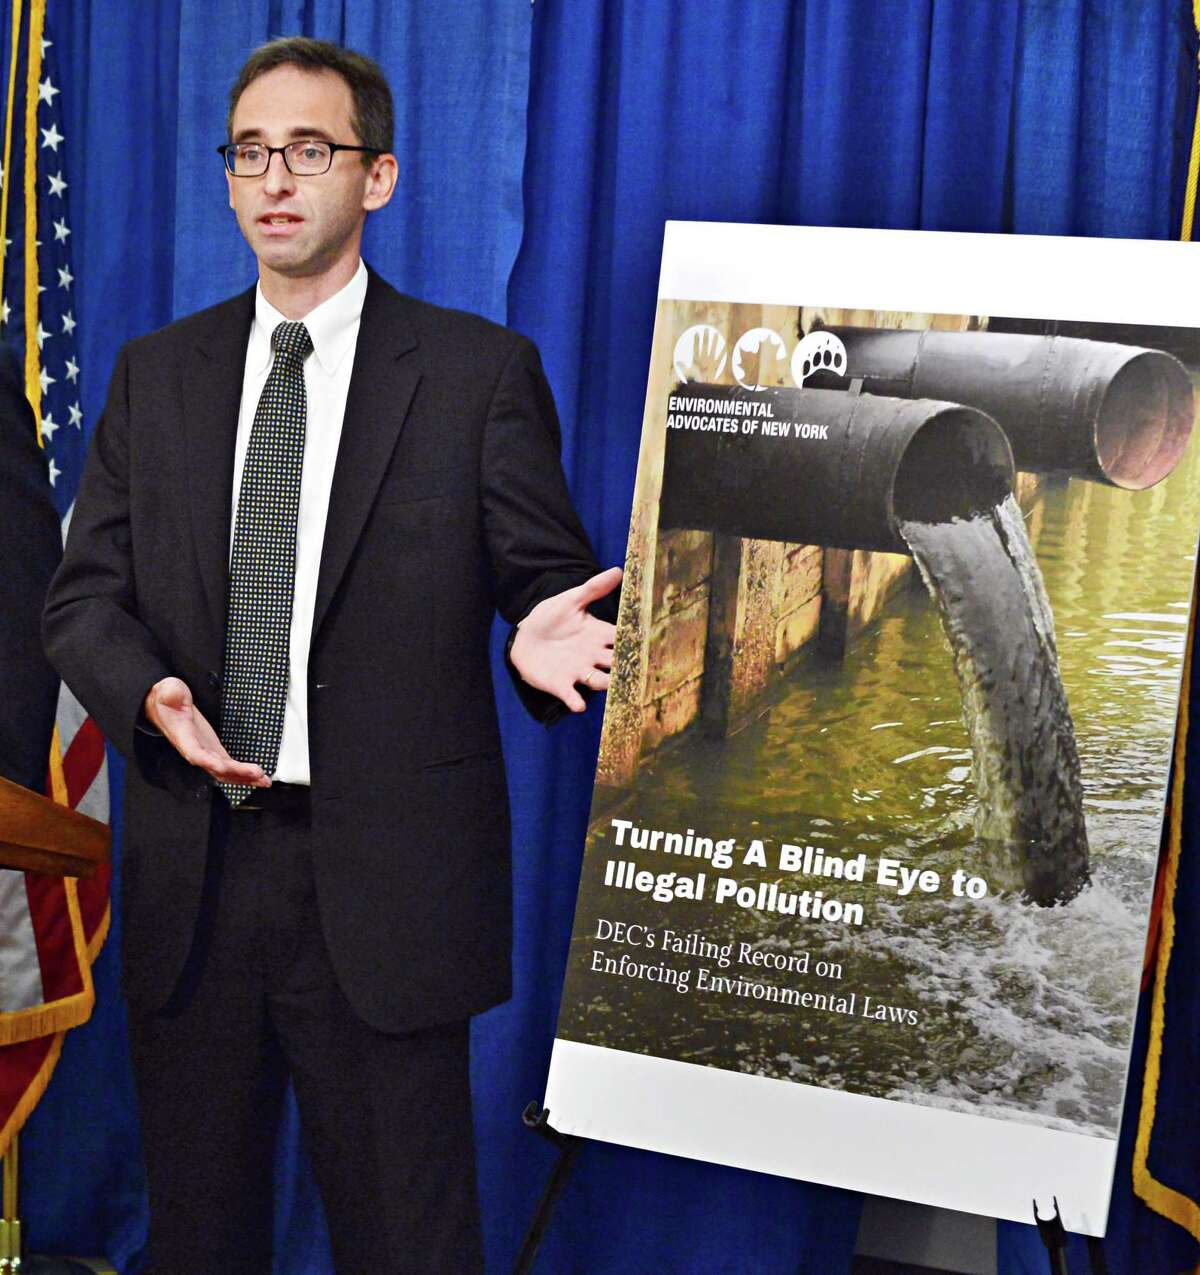 Environmental Advocates of New York's interim executive director Dave Gahl releases a report claiming Cuomo budget cuts have endangered the environment during a news conference Thursday Sept. 12, 2013, at the Capitol in Albany, NY. (John Carl D'Annibale / Times Union)